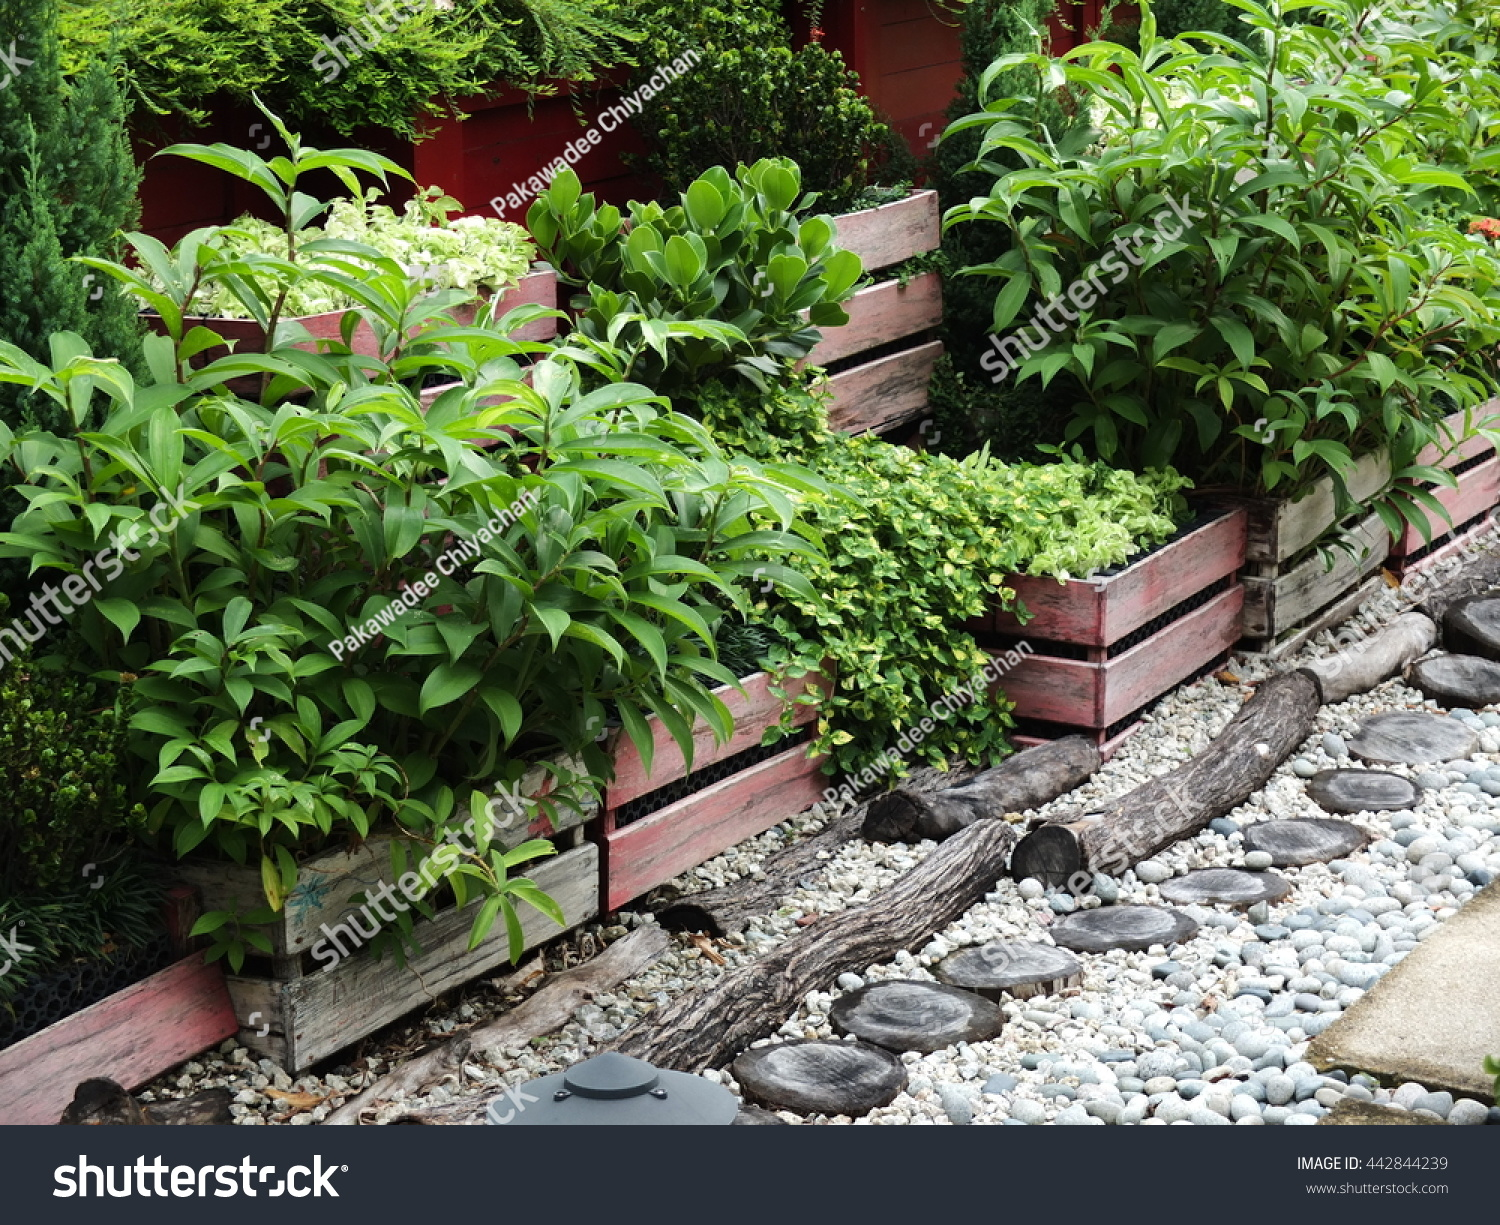 Ideas Outdoor Garden Decoration Stock Photo (Royalty Free) 442844239 ...